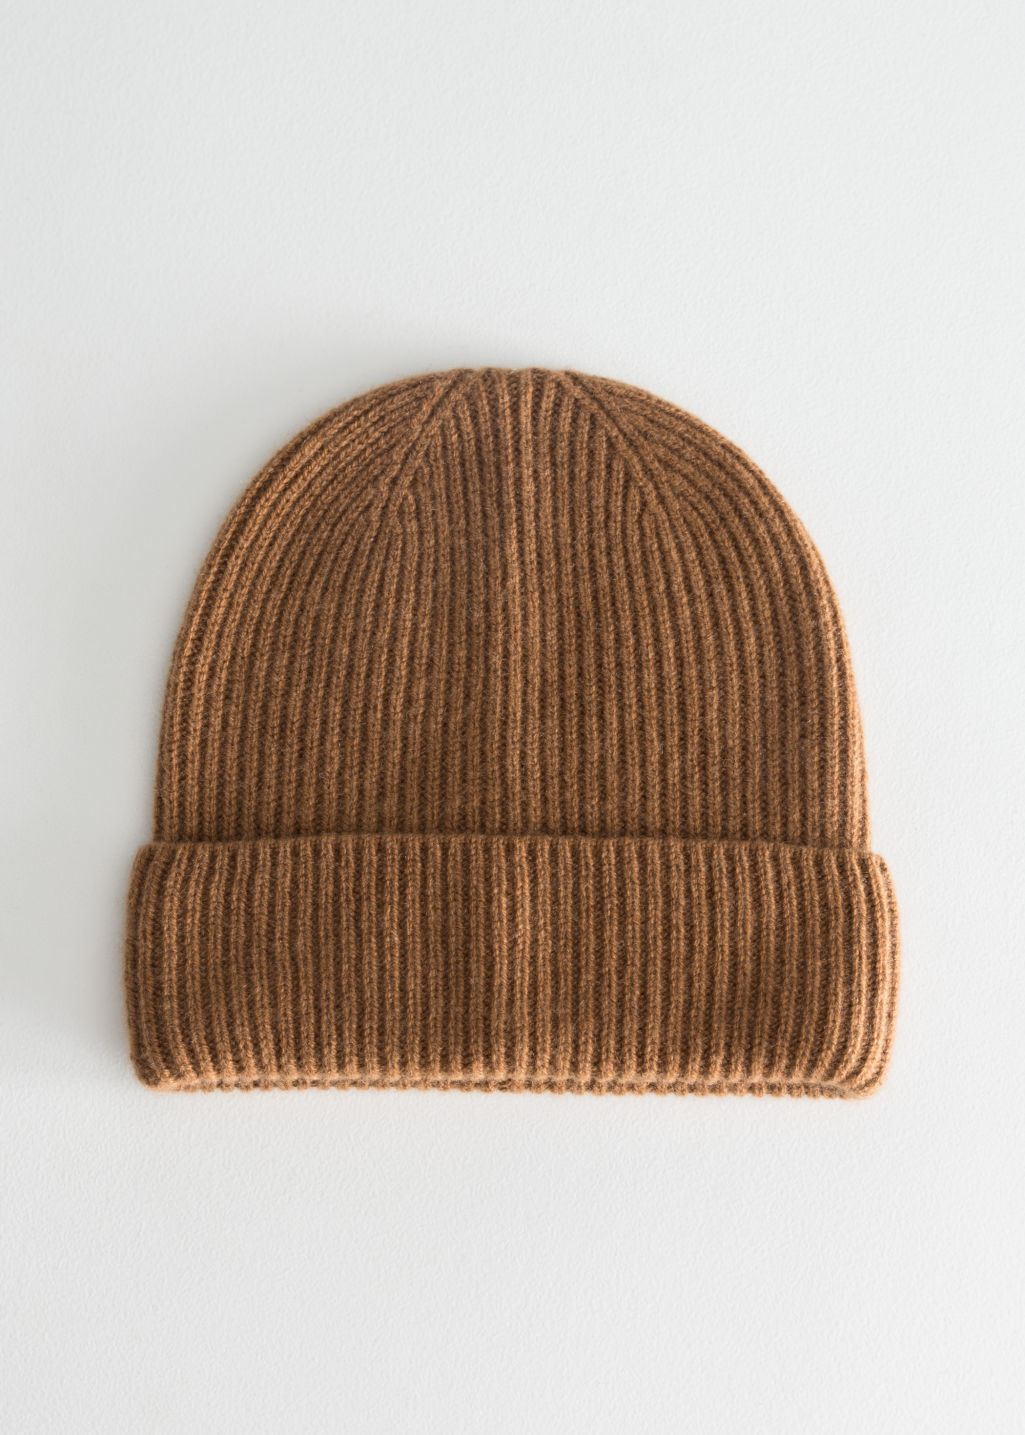 Soft Knit Beanie - Beige - Beanies -   Other Stories e1f09d64592